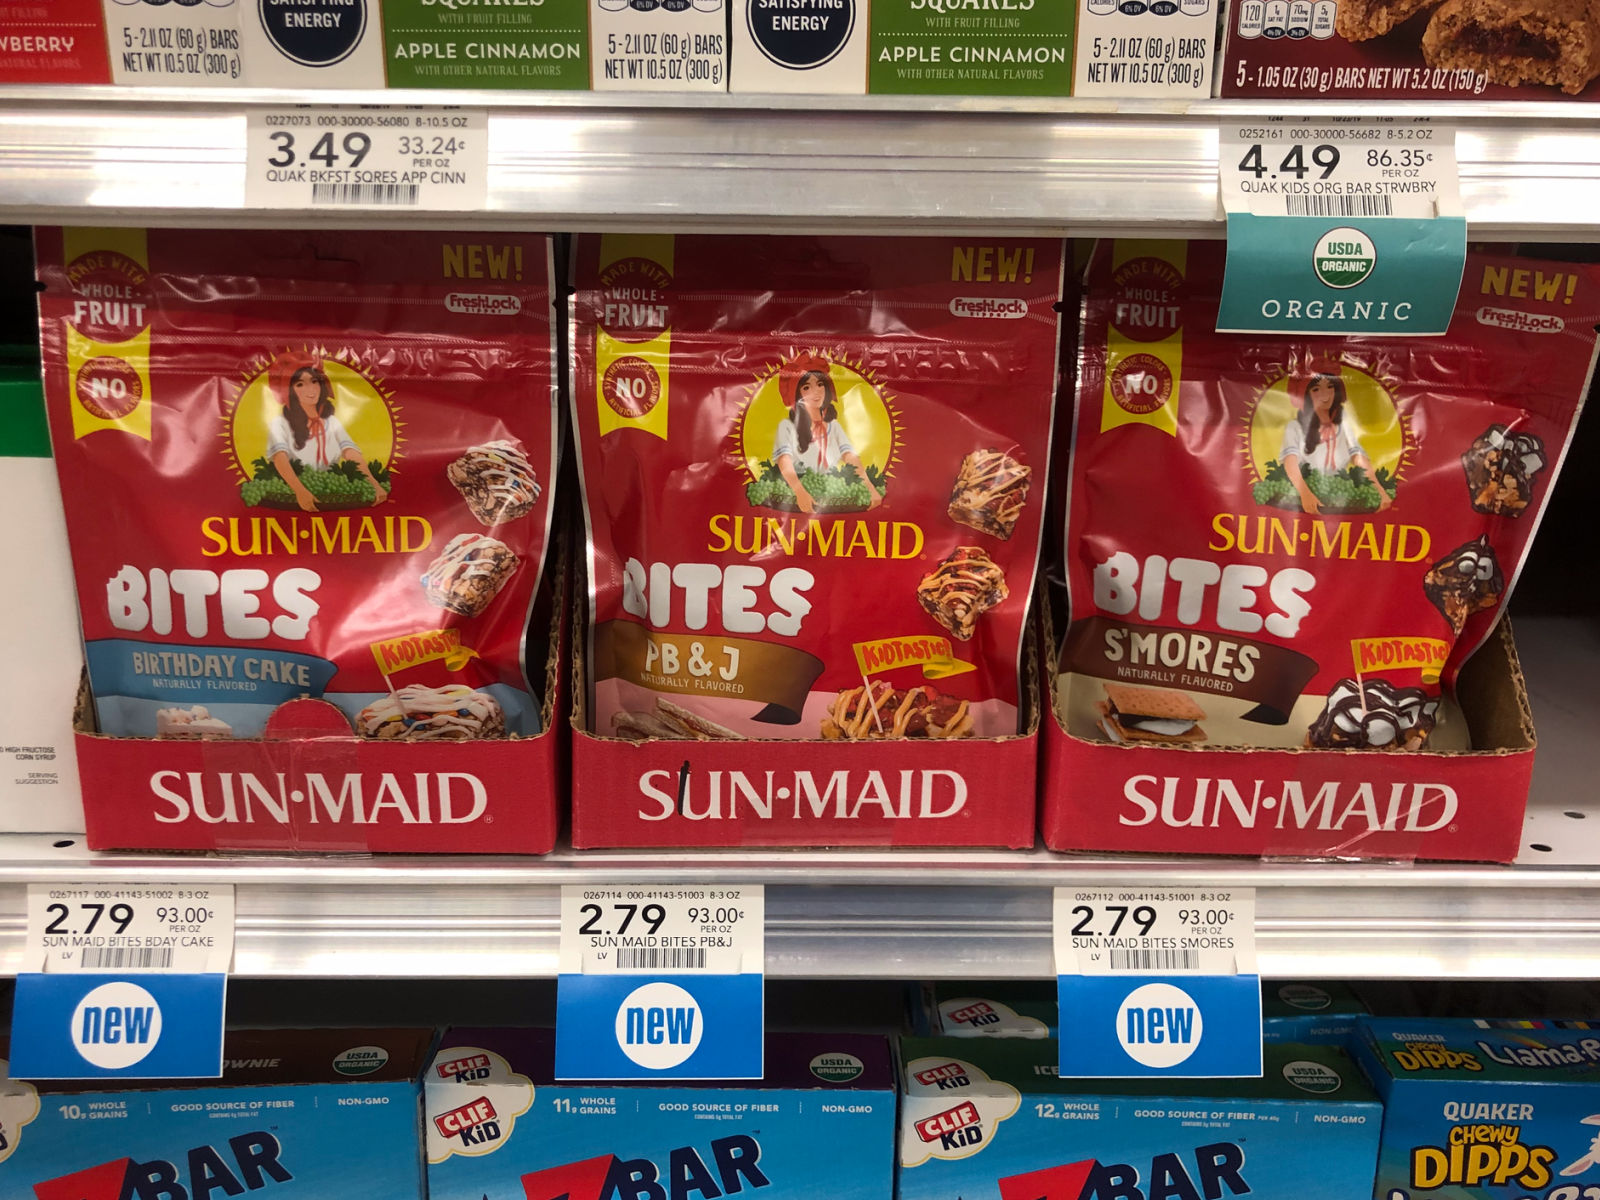 Pick Up Savings On Delicious New Sun-Maid Bites At Publix on I Heart Publix